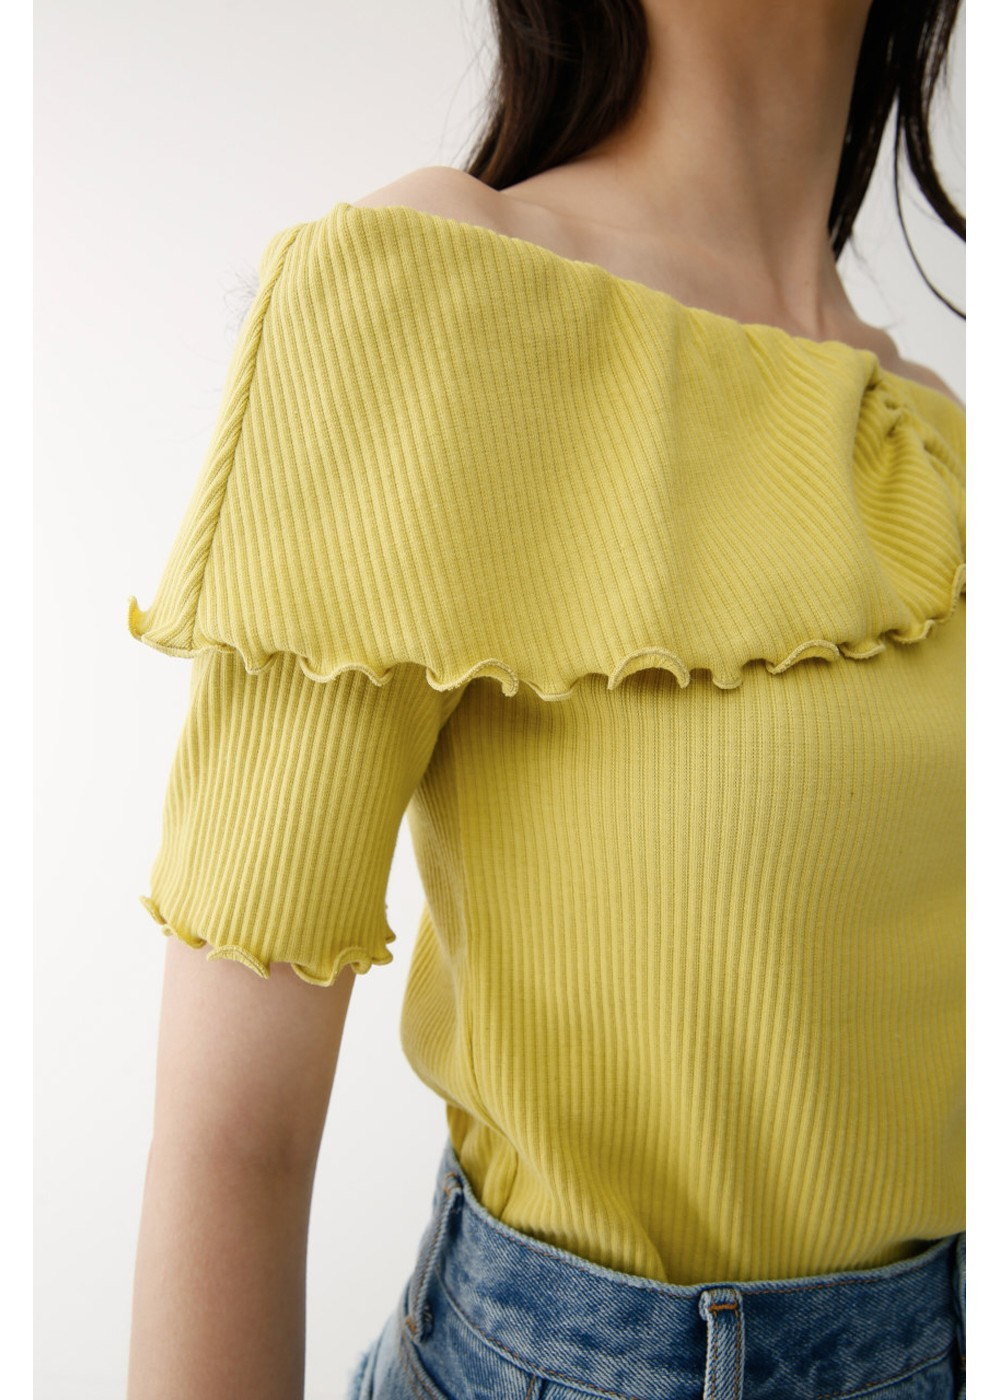 【最大70%OFF】MELLOW RIB OFF SHOULDER TOP|YEL|カットソー|MOUSSY